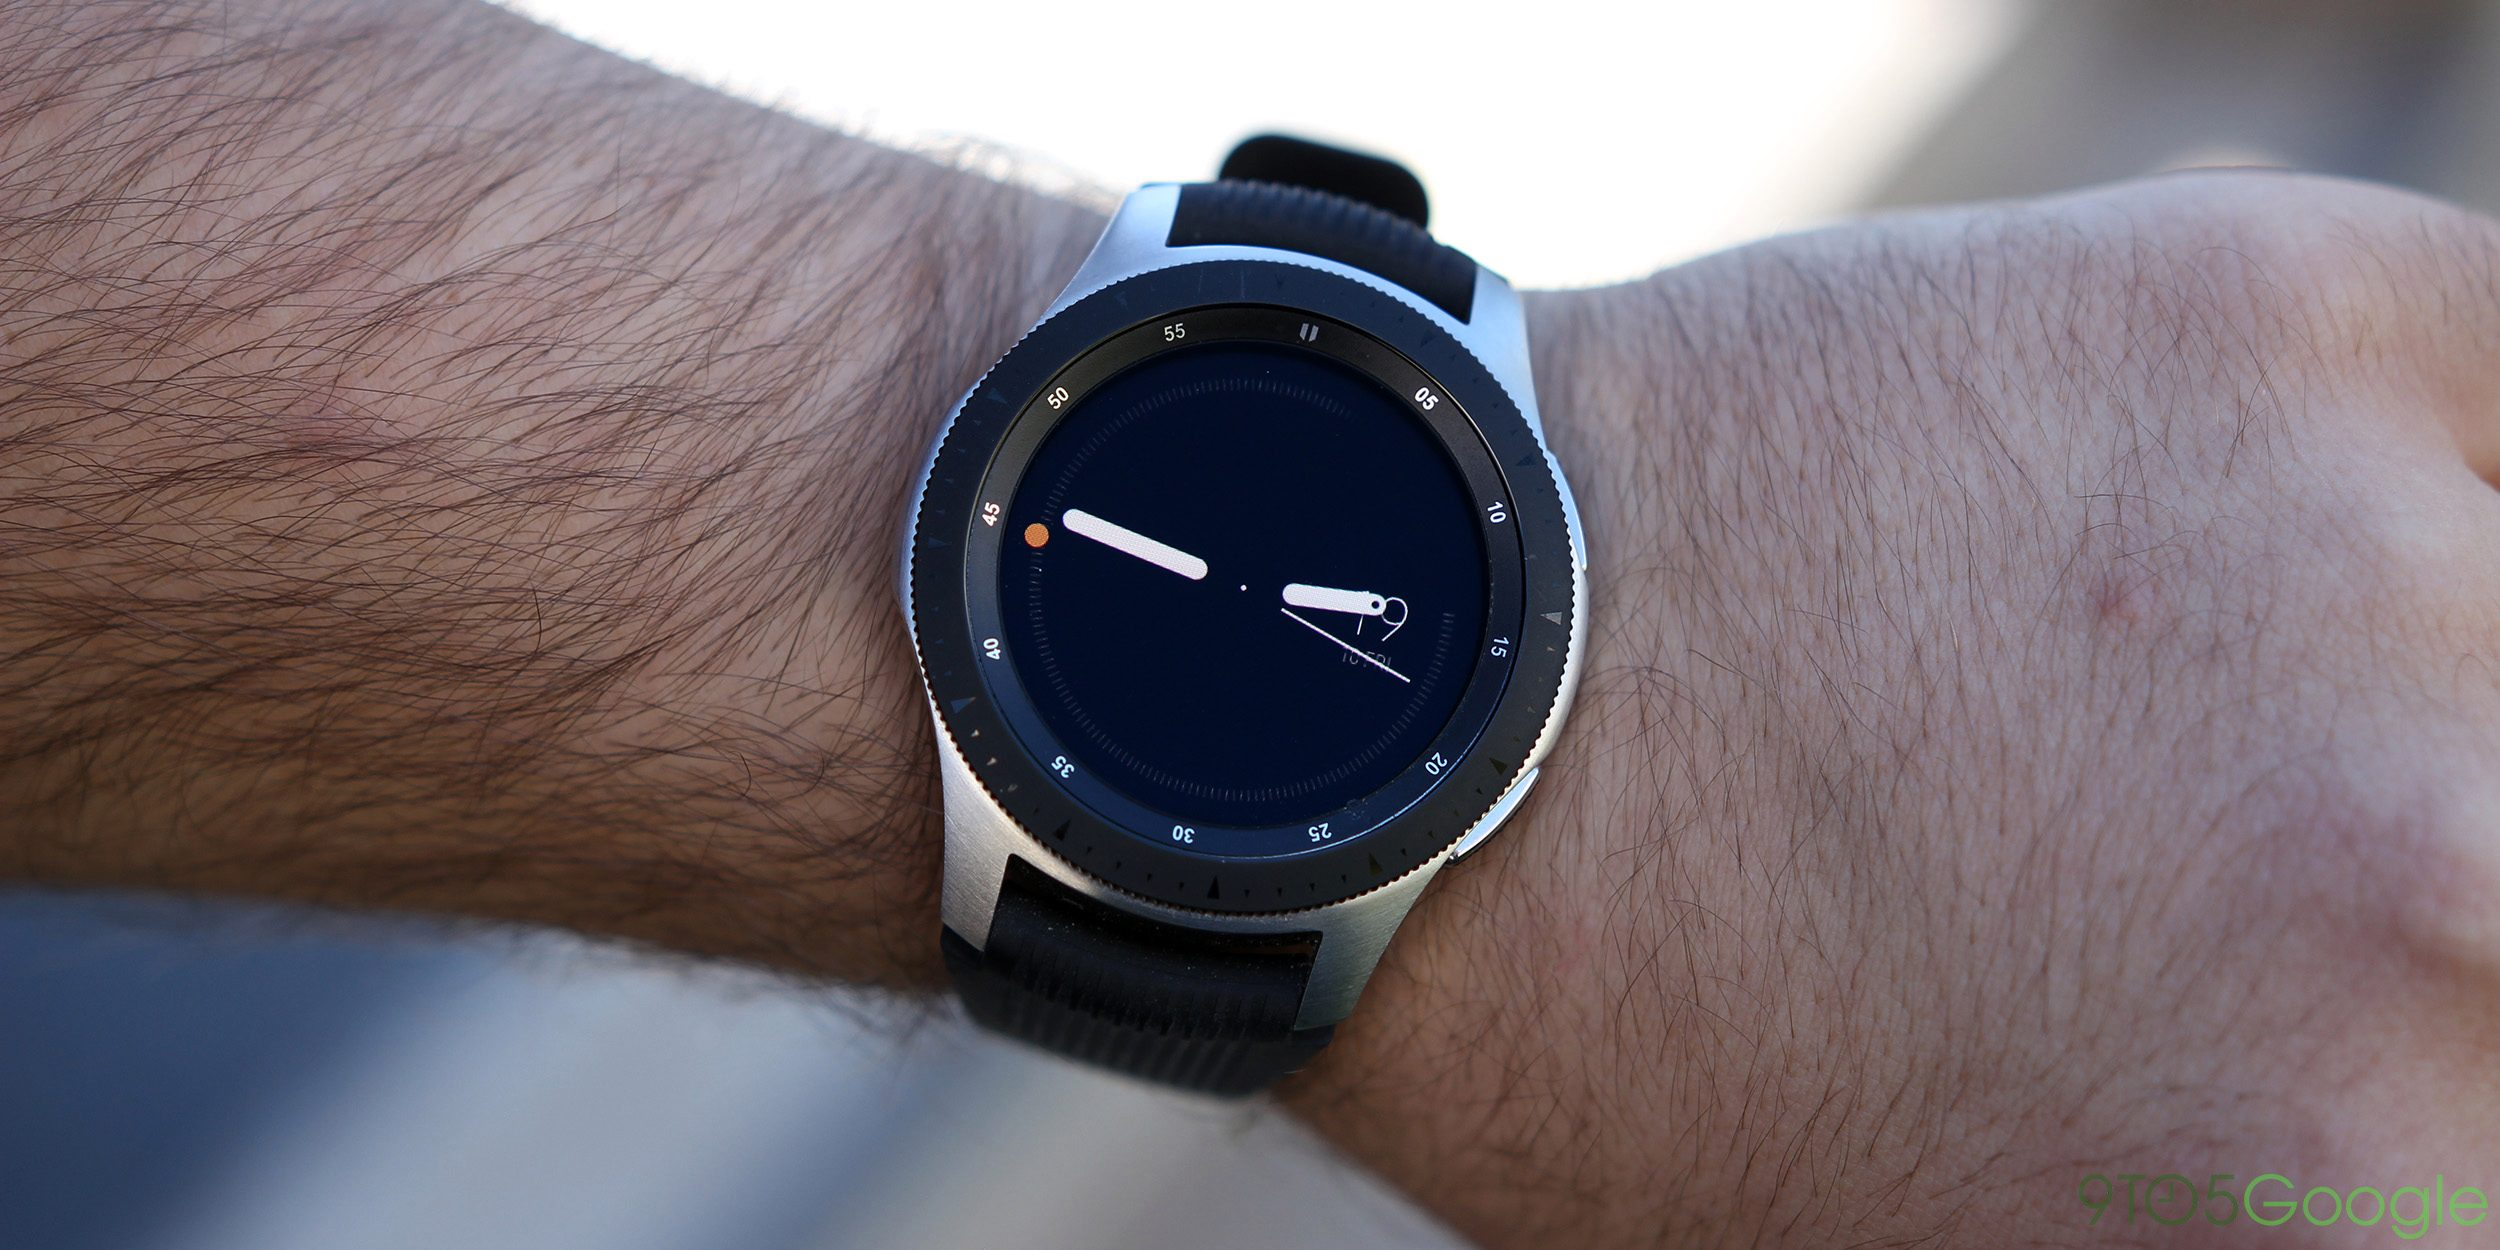 Review: The Samsung Galaxy Watch is the Android smartwatch ...